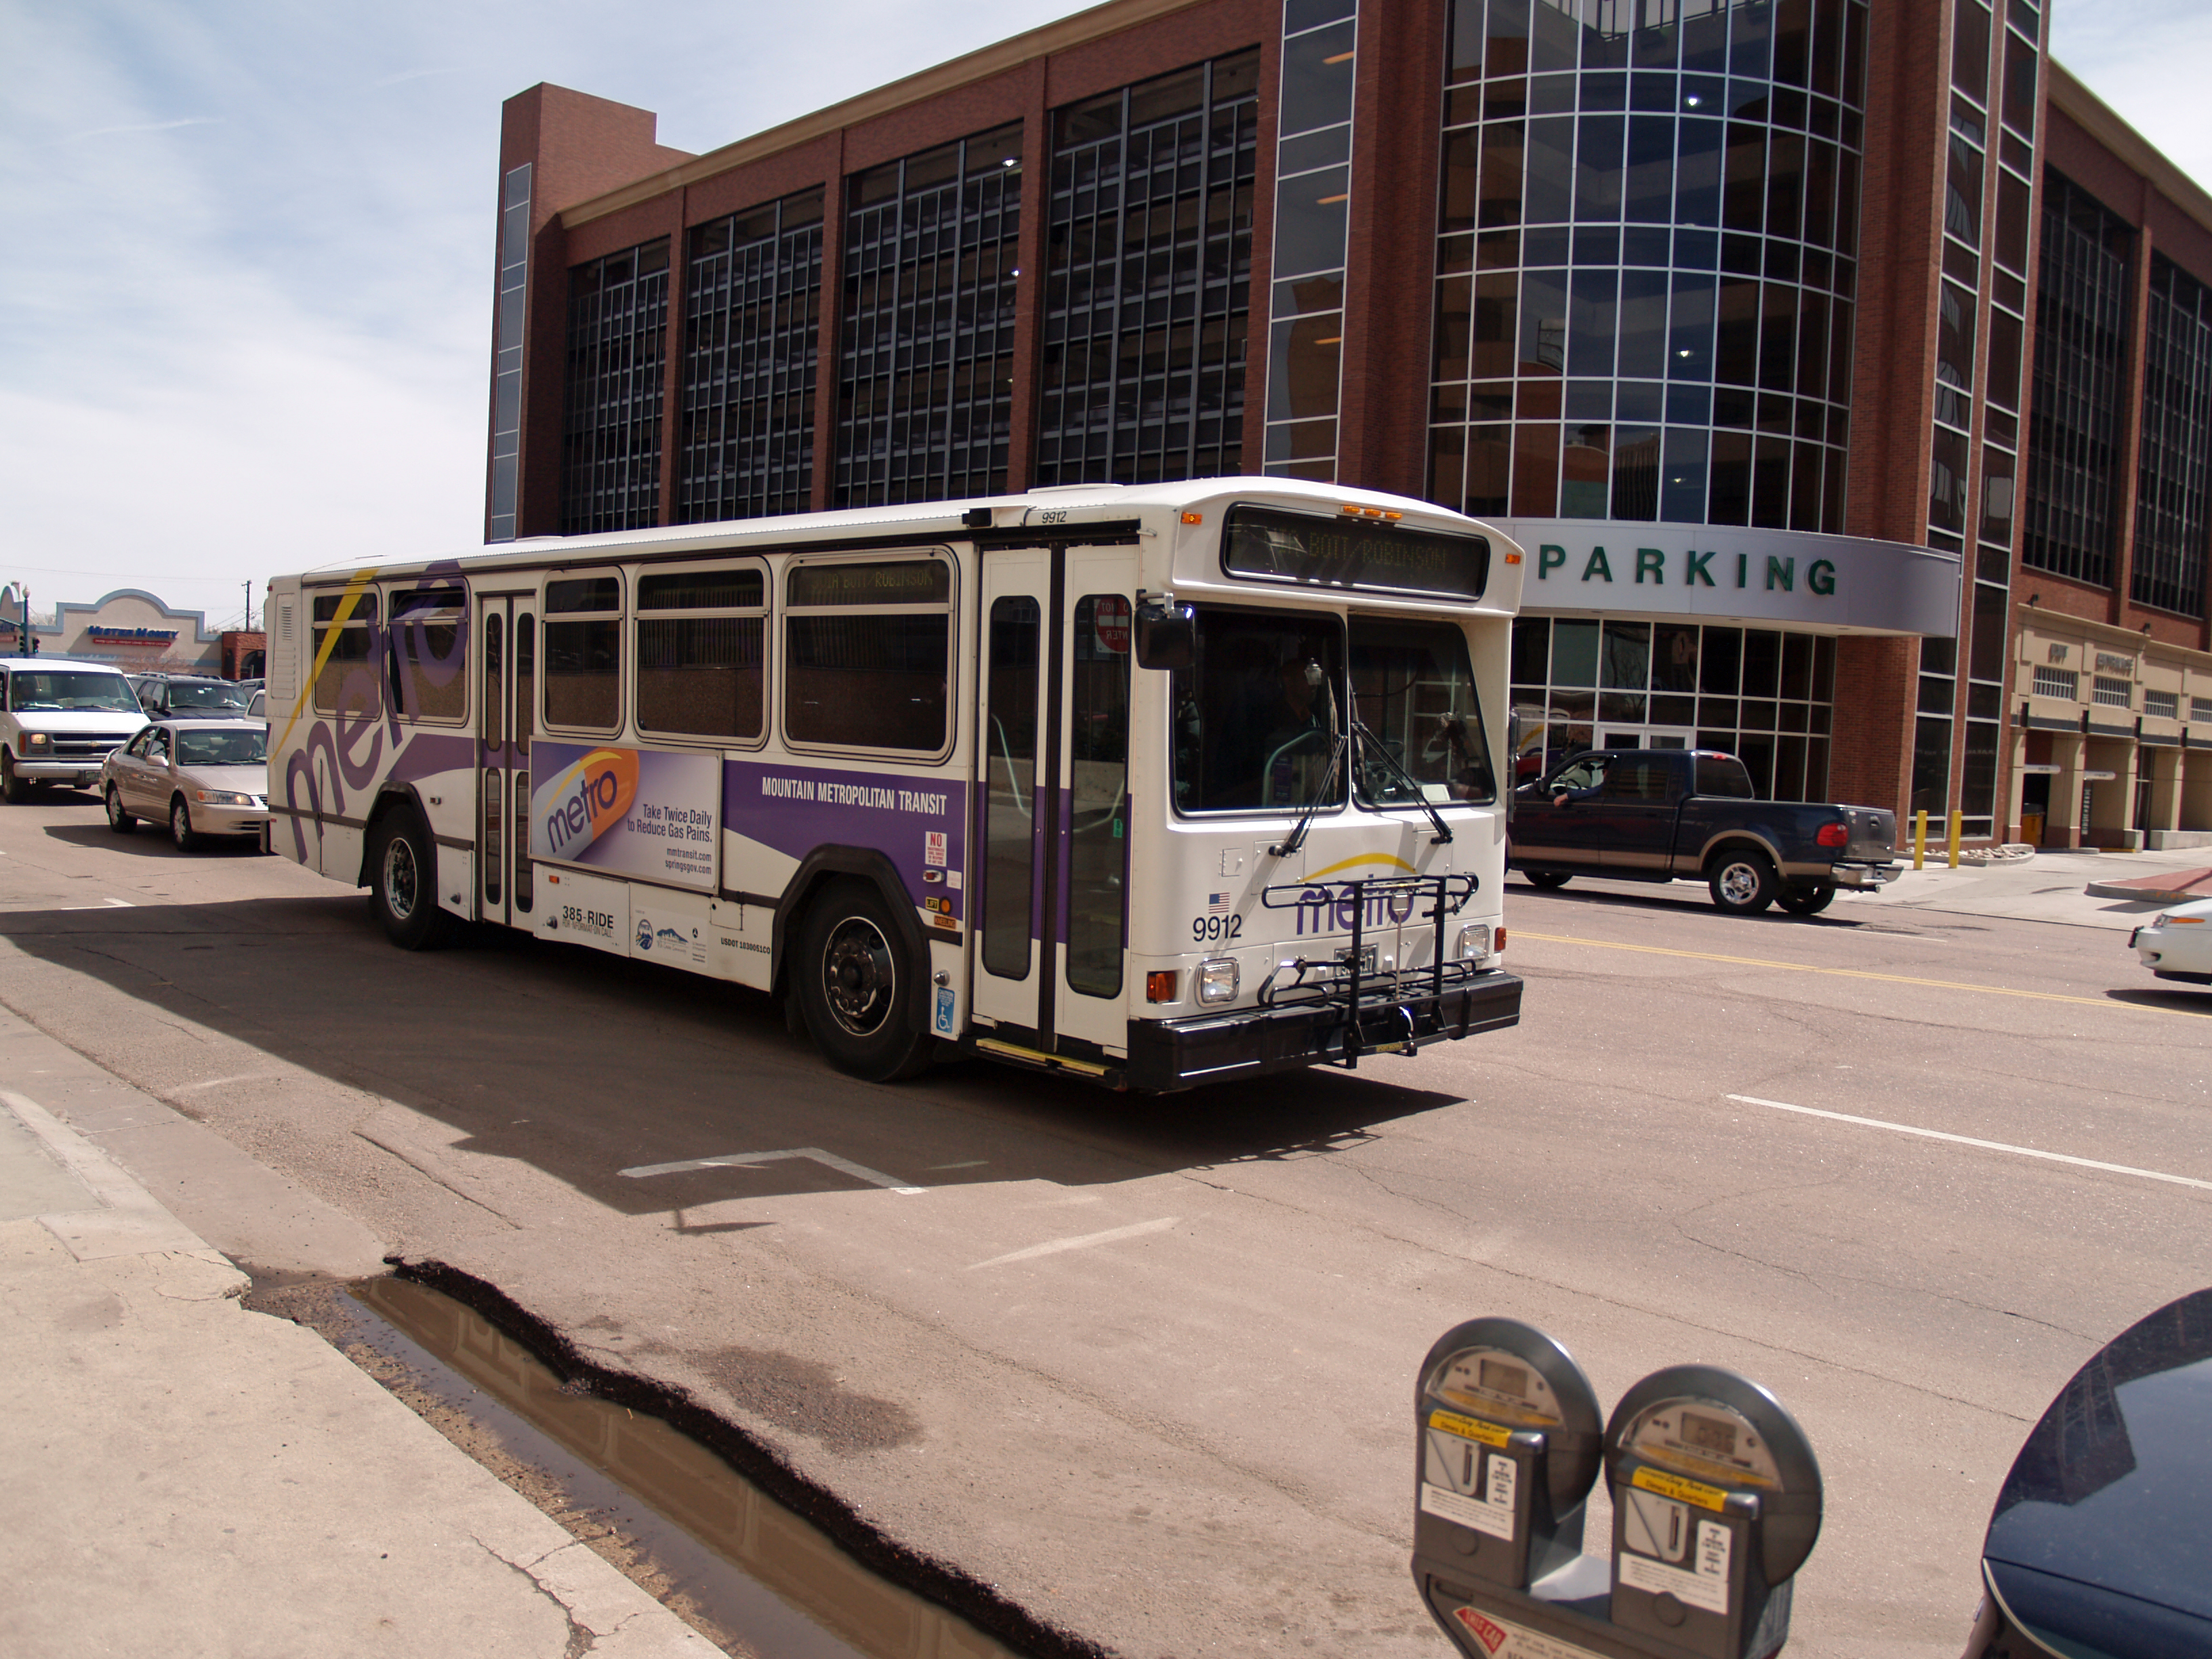 A Metro bus drives past a parking garage in downtown Colorado Springs.